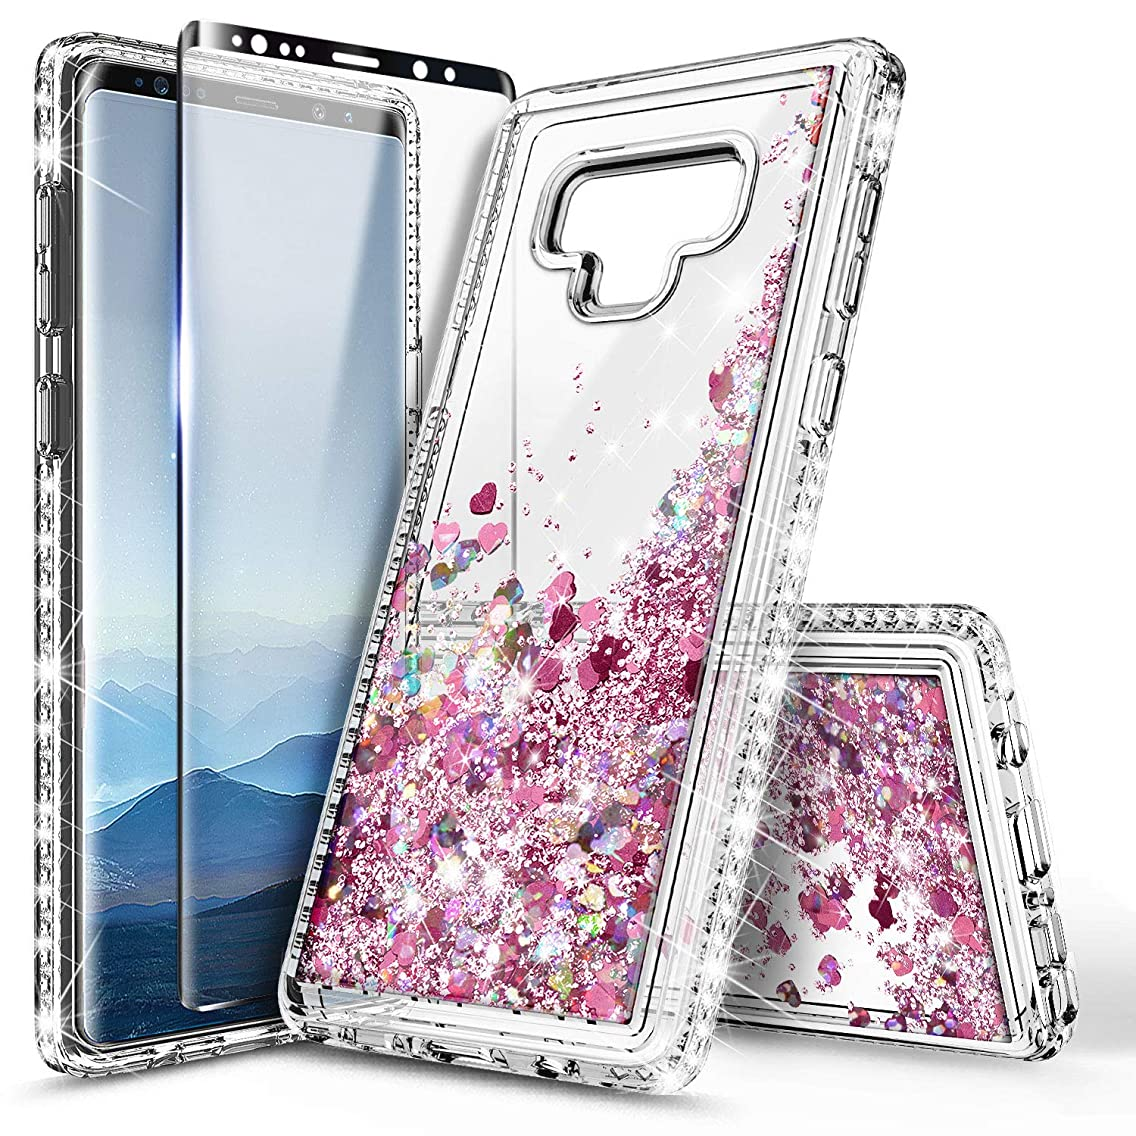 Galaxy Note 9 Case with Screen Protector (3D Pet Full Coverage) for Girls Women, NageBee Glitter Liquid Bling Floating Quicksand Waterfall Shockproof Cute Case for Samsung Galaxy Note 9 -Rose Gold